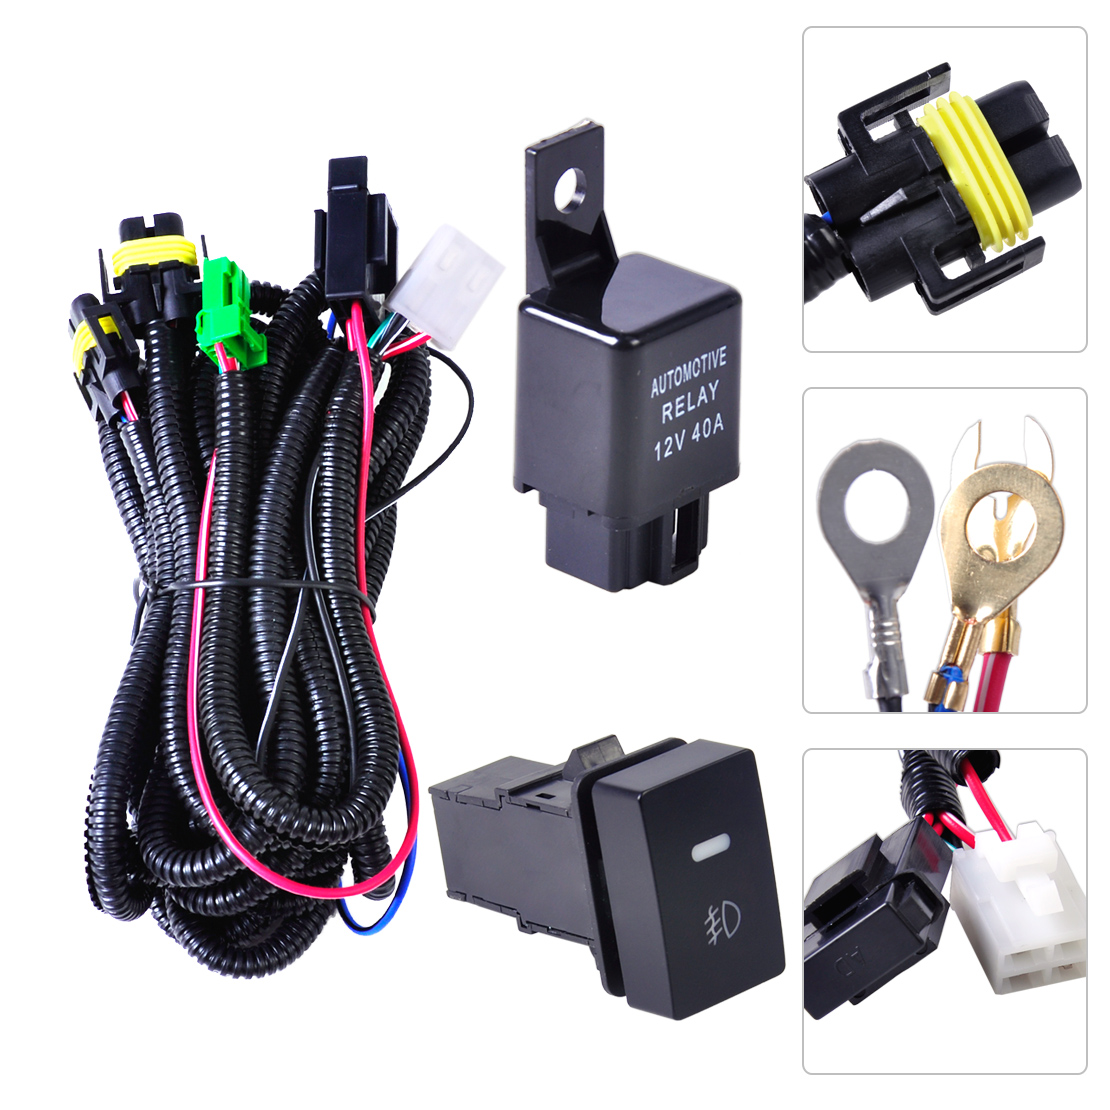 DWCX Wiring Harness Sockets Wire + Switch for H11 Fog Light Lamp for Ford Focus Acura Nissan Suzuki Subaru Lincoln Honda CR-V dwcx fog light lamp female adapter wiring harness sockets wire connector for ford focus acura nissan honda cr v infiniti subaru